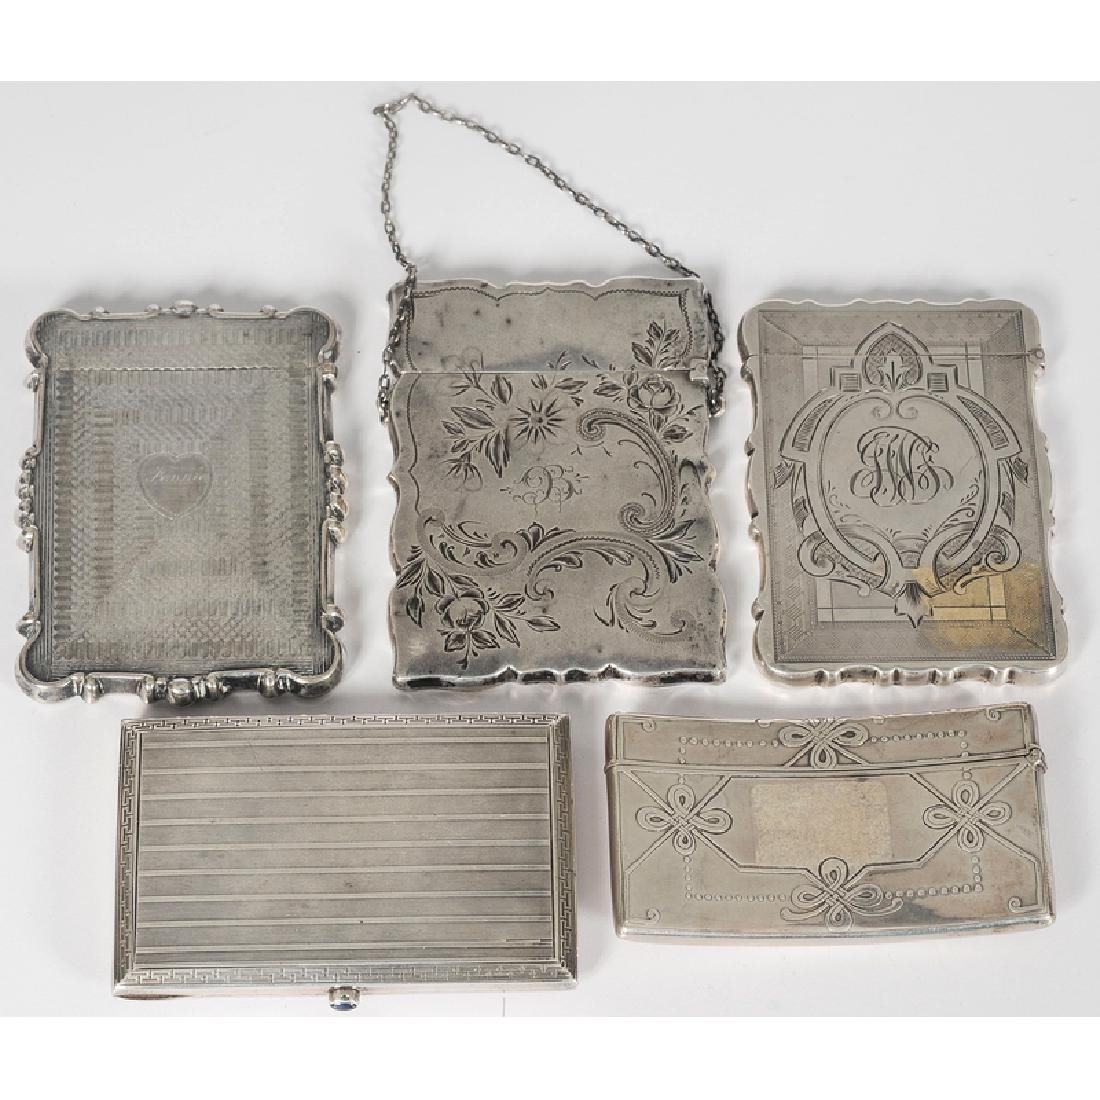 Tiffany and Other Silver Calling Card Cases - 2